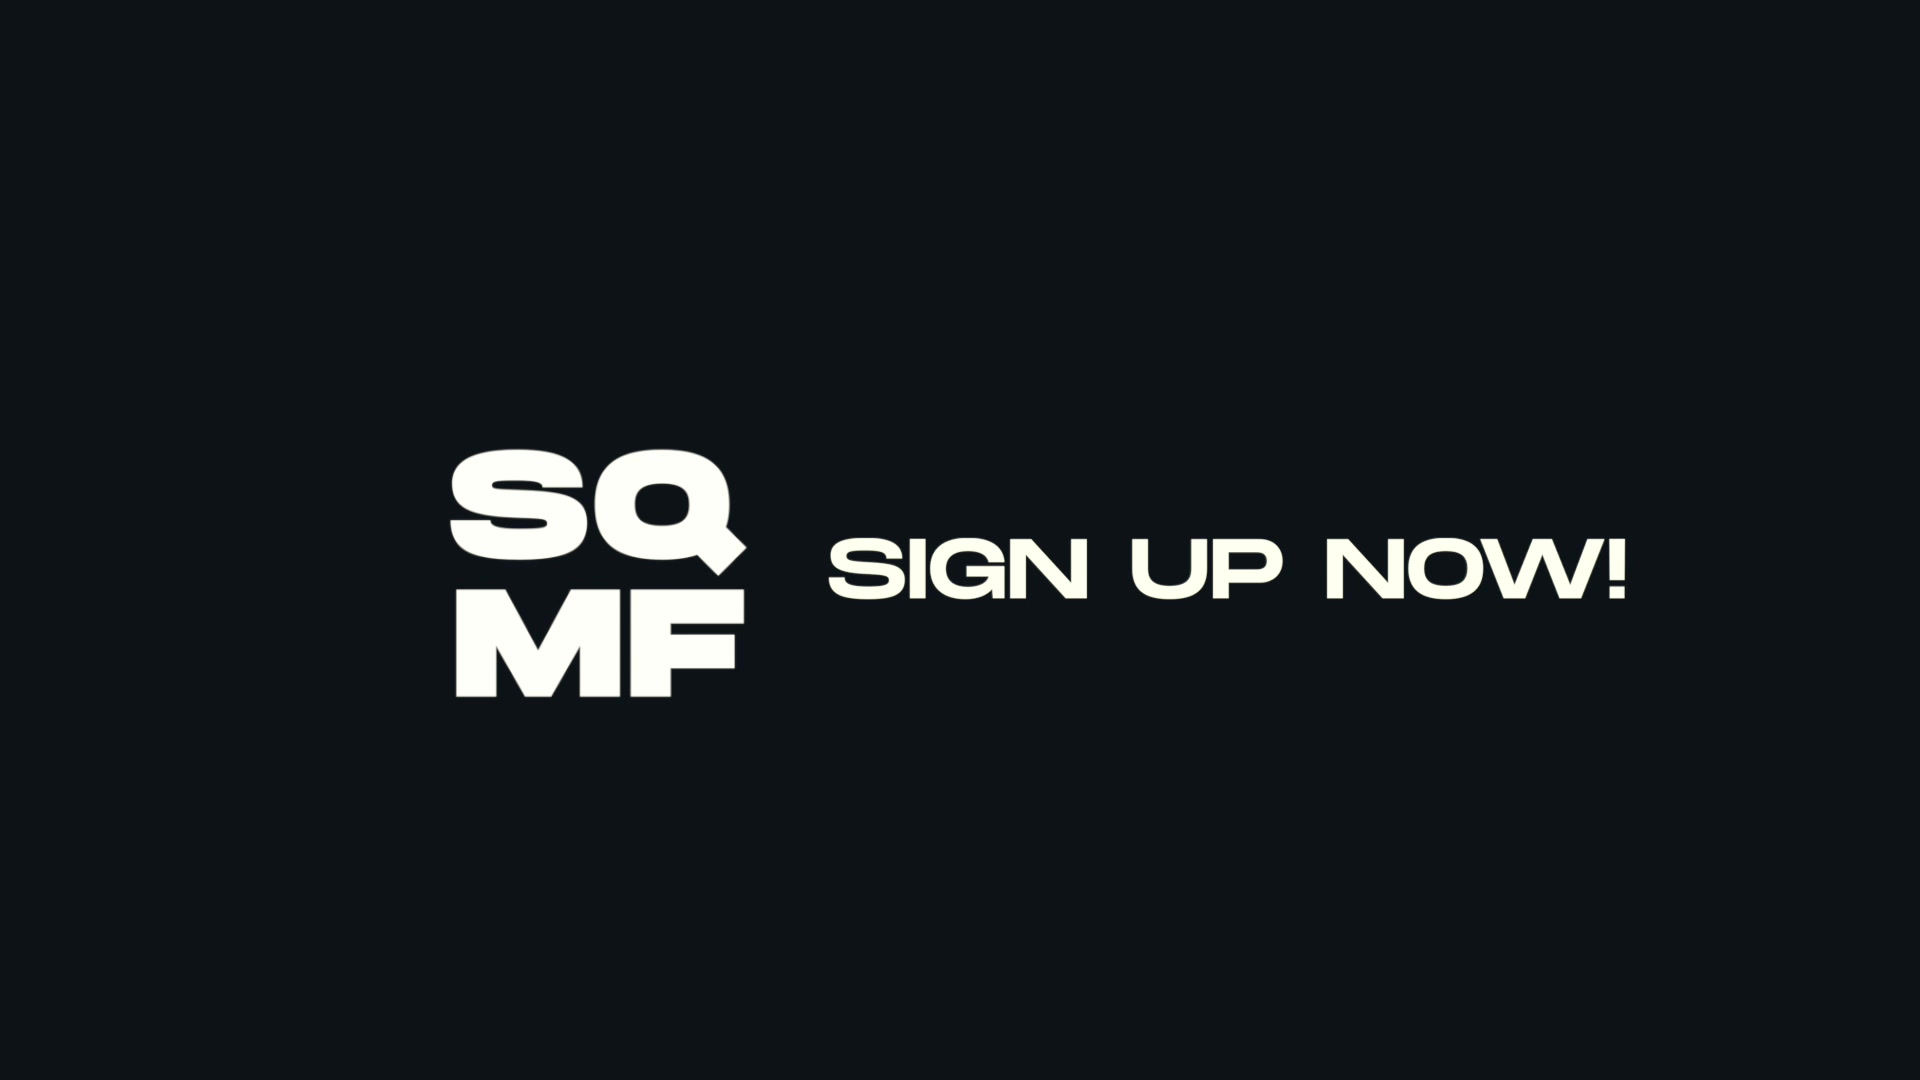 SIGN UP MOW.mp4